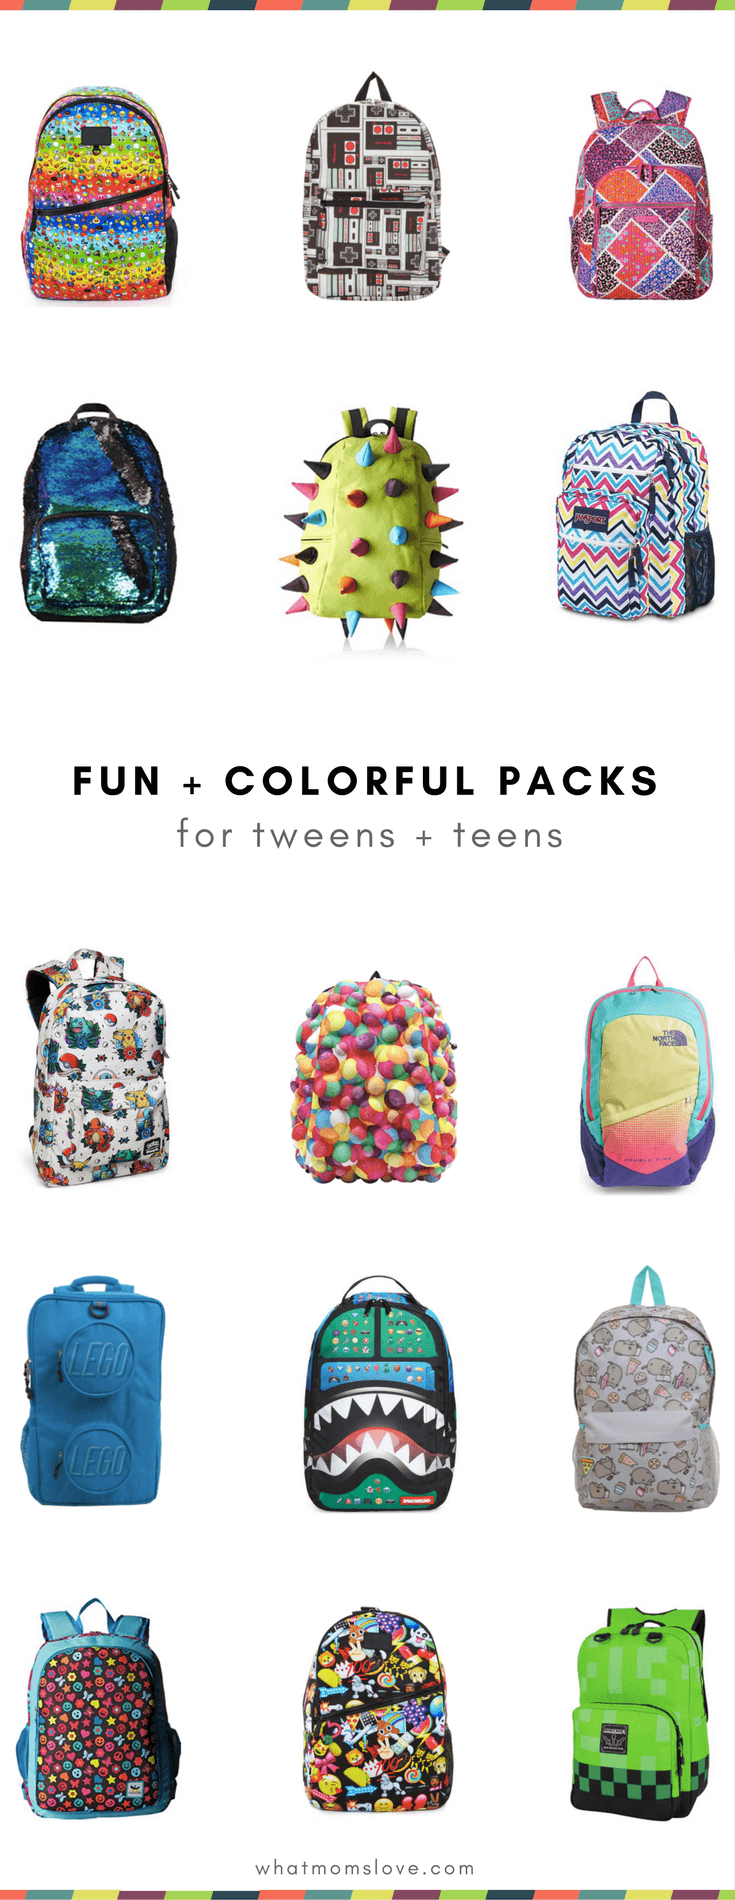 Best Backpacks for Tweens and Teens for Back to School - Colorful Fun Emoji